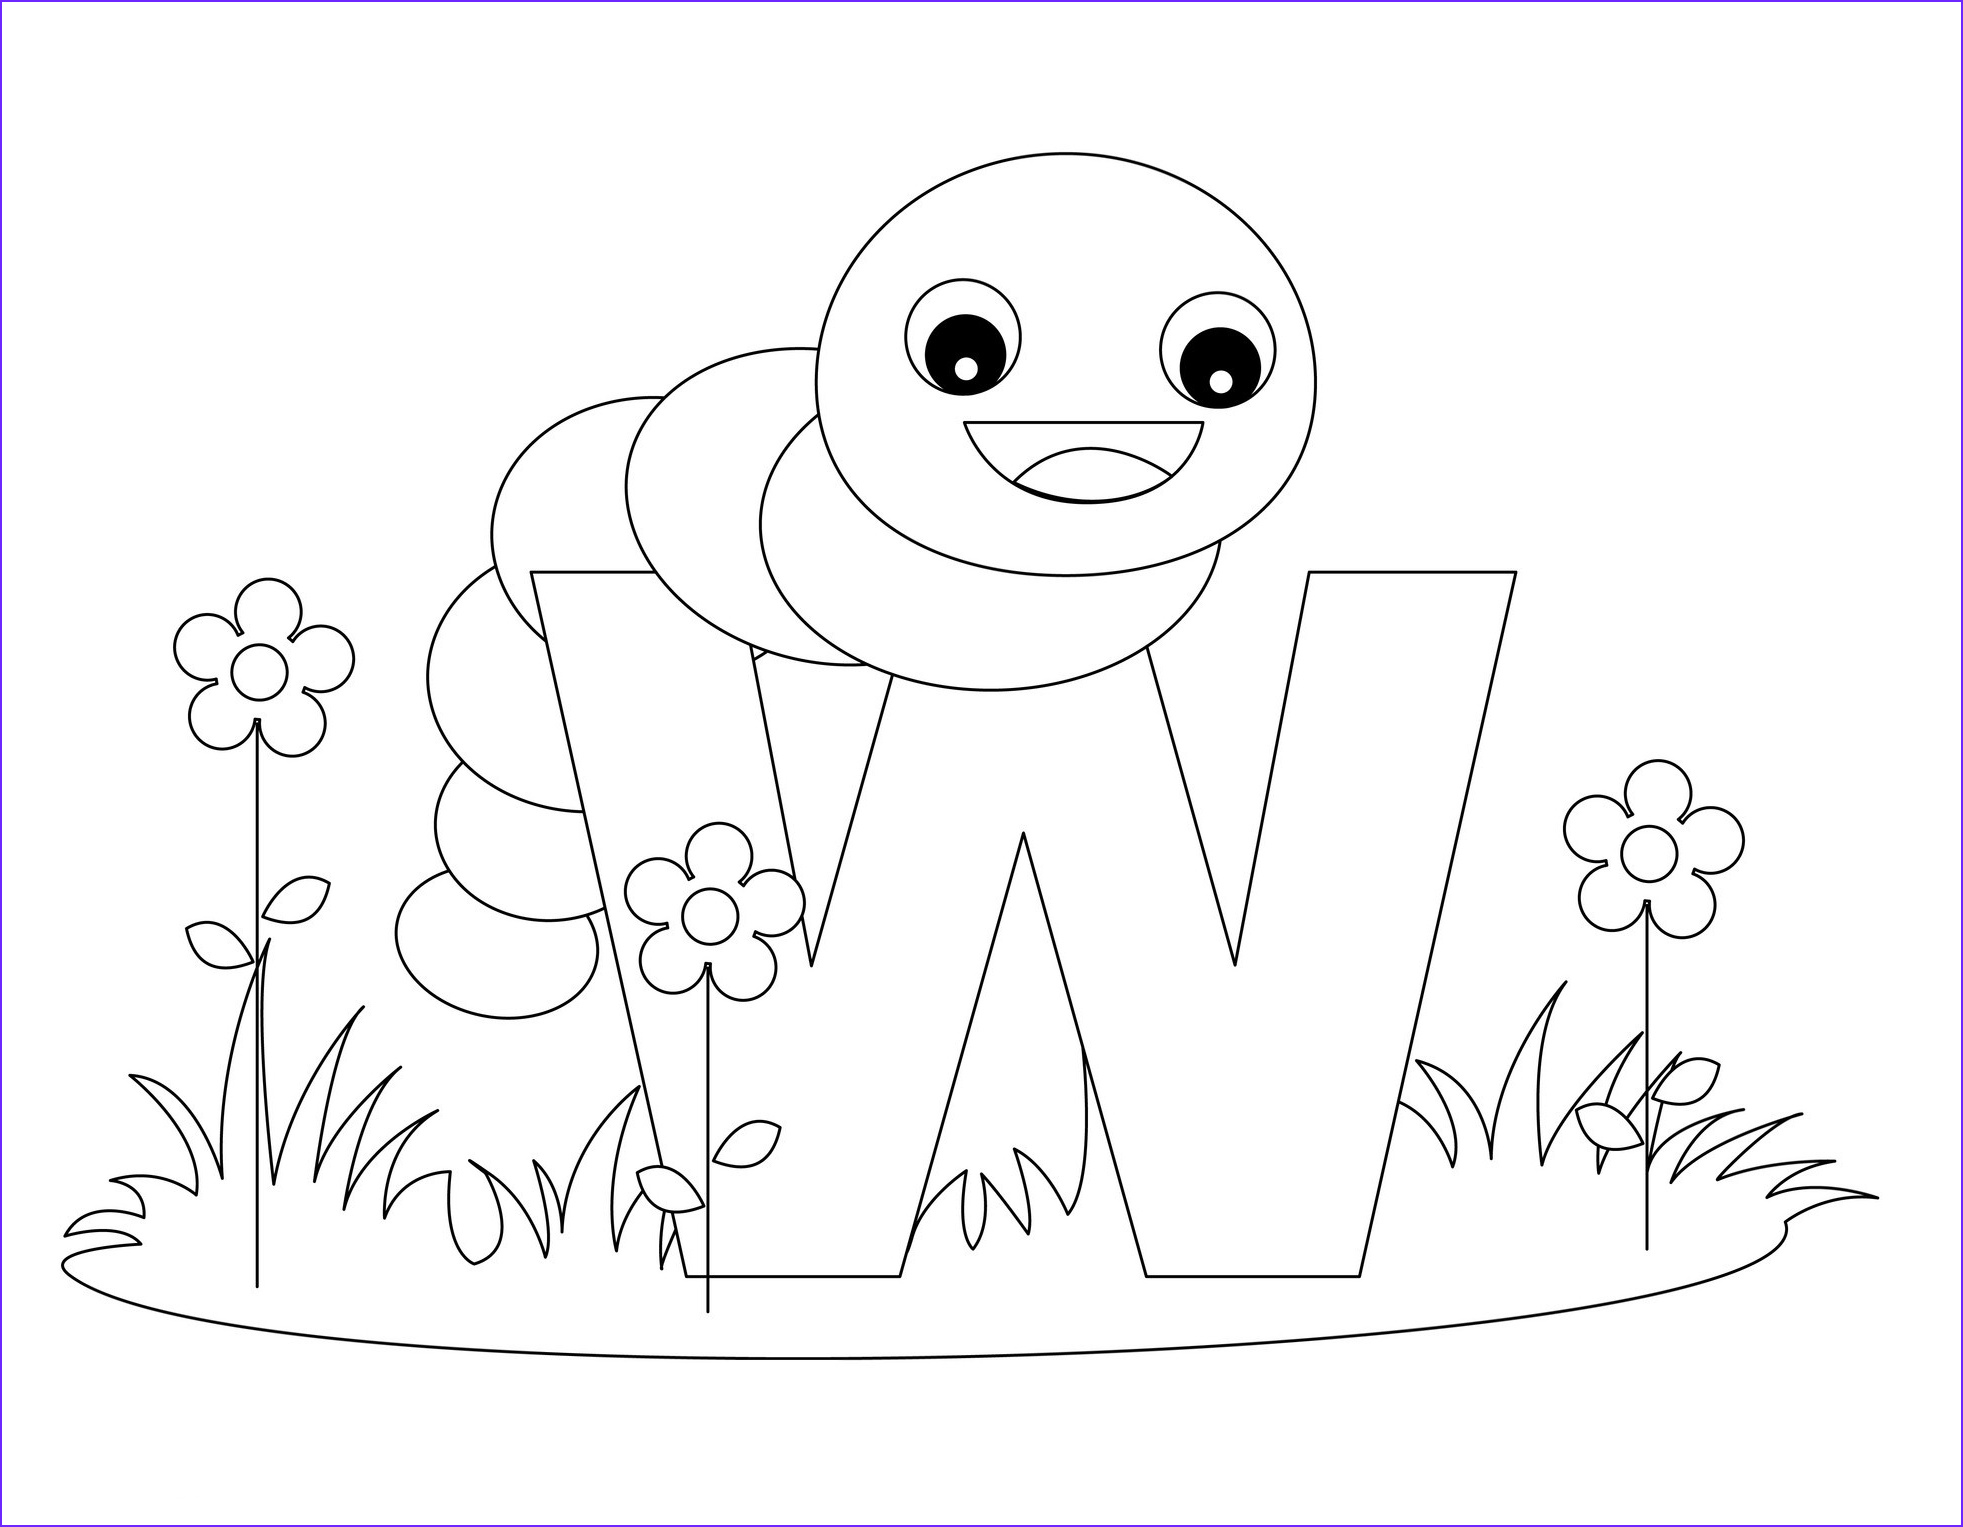 Alphabets Coloring Sheets New Image Free Printable Alphabet Coloring Pages for Kids Best